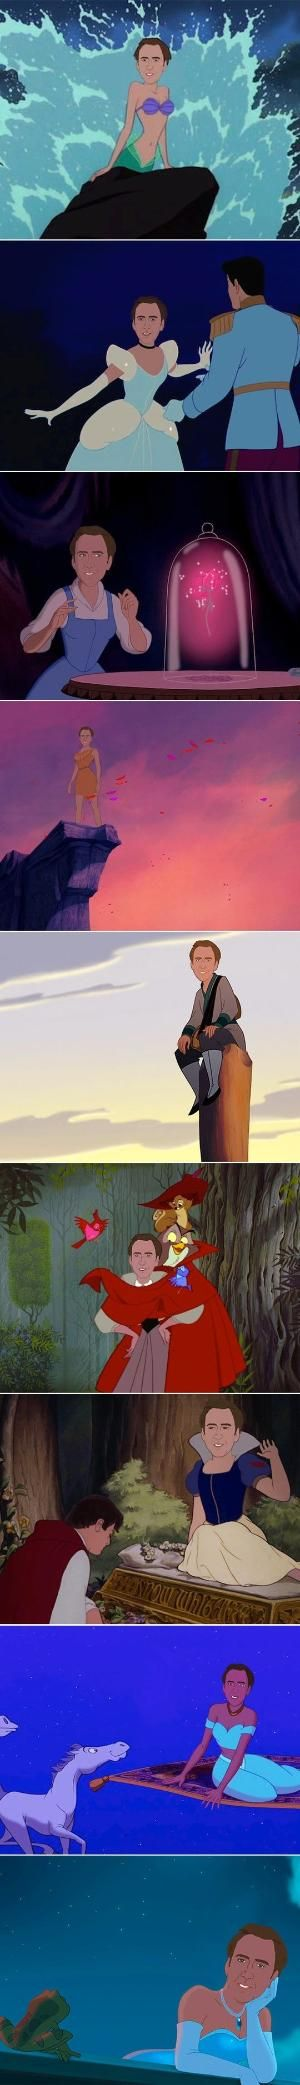 Princess Nicolas Cage… now that I have this I dnt know what to do with it......... by ellen